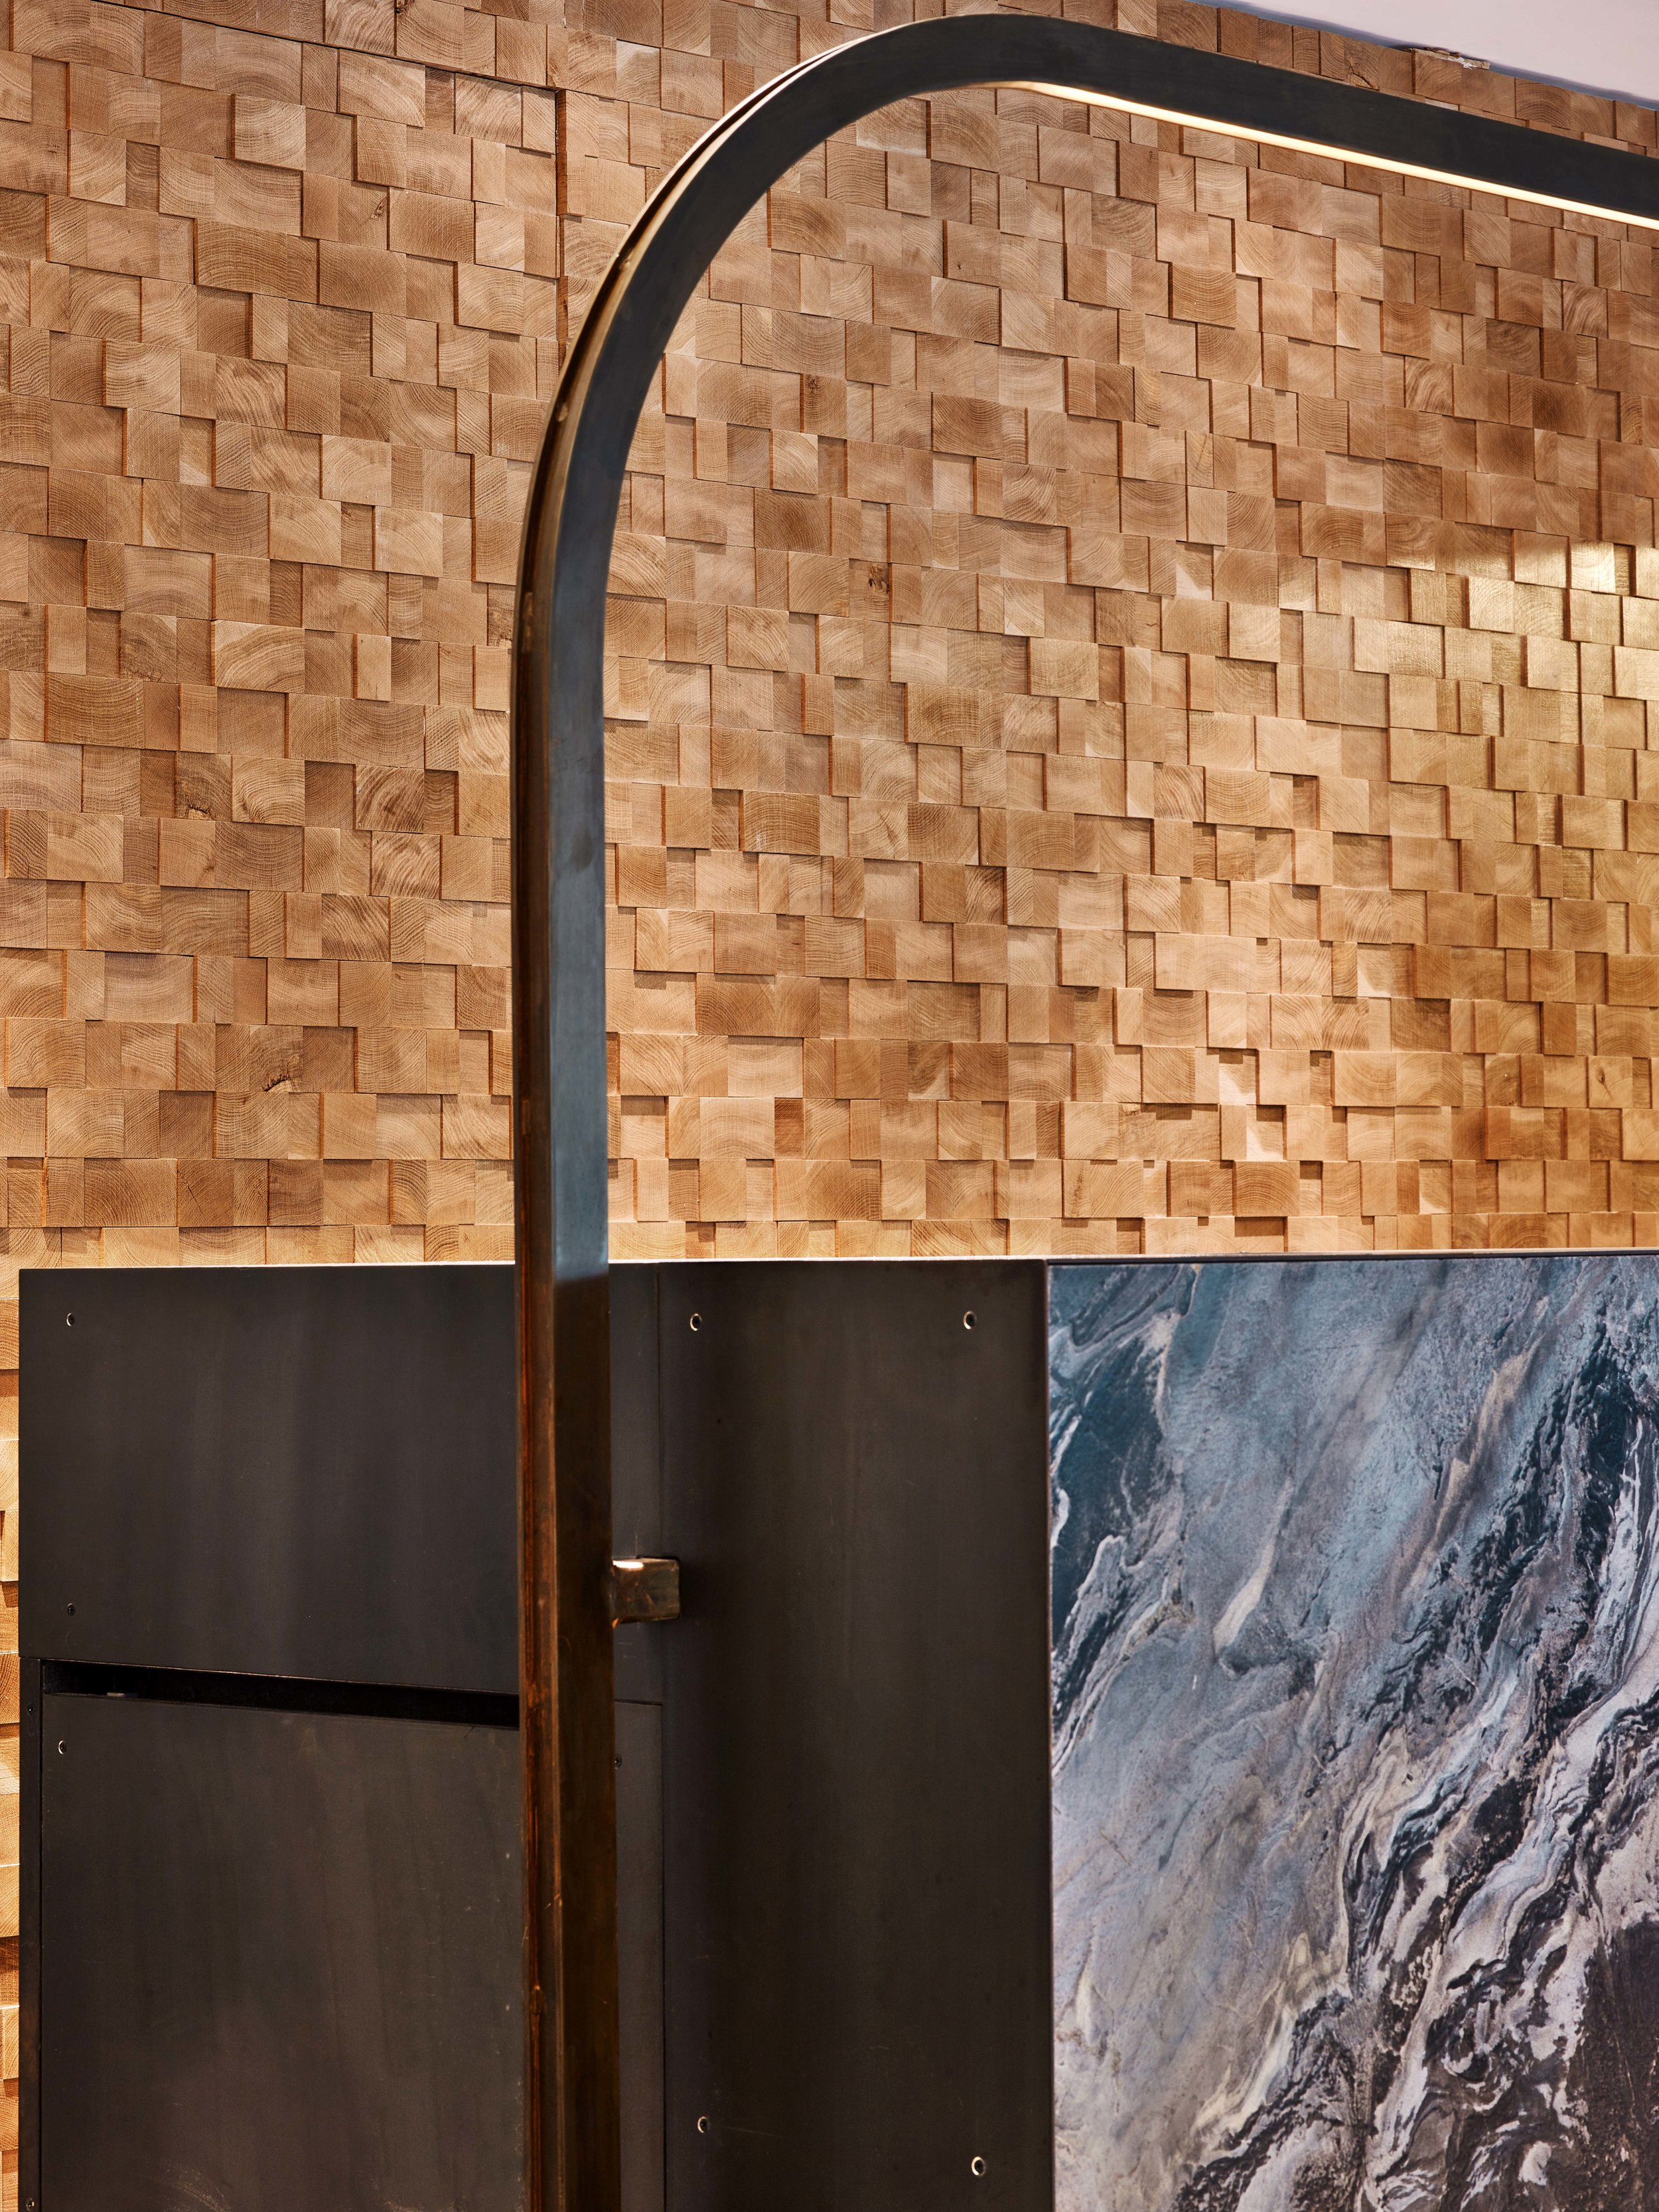 Equinox Dumbo Front Desk and Wall Detail